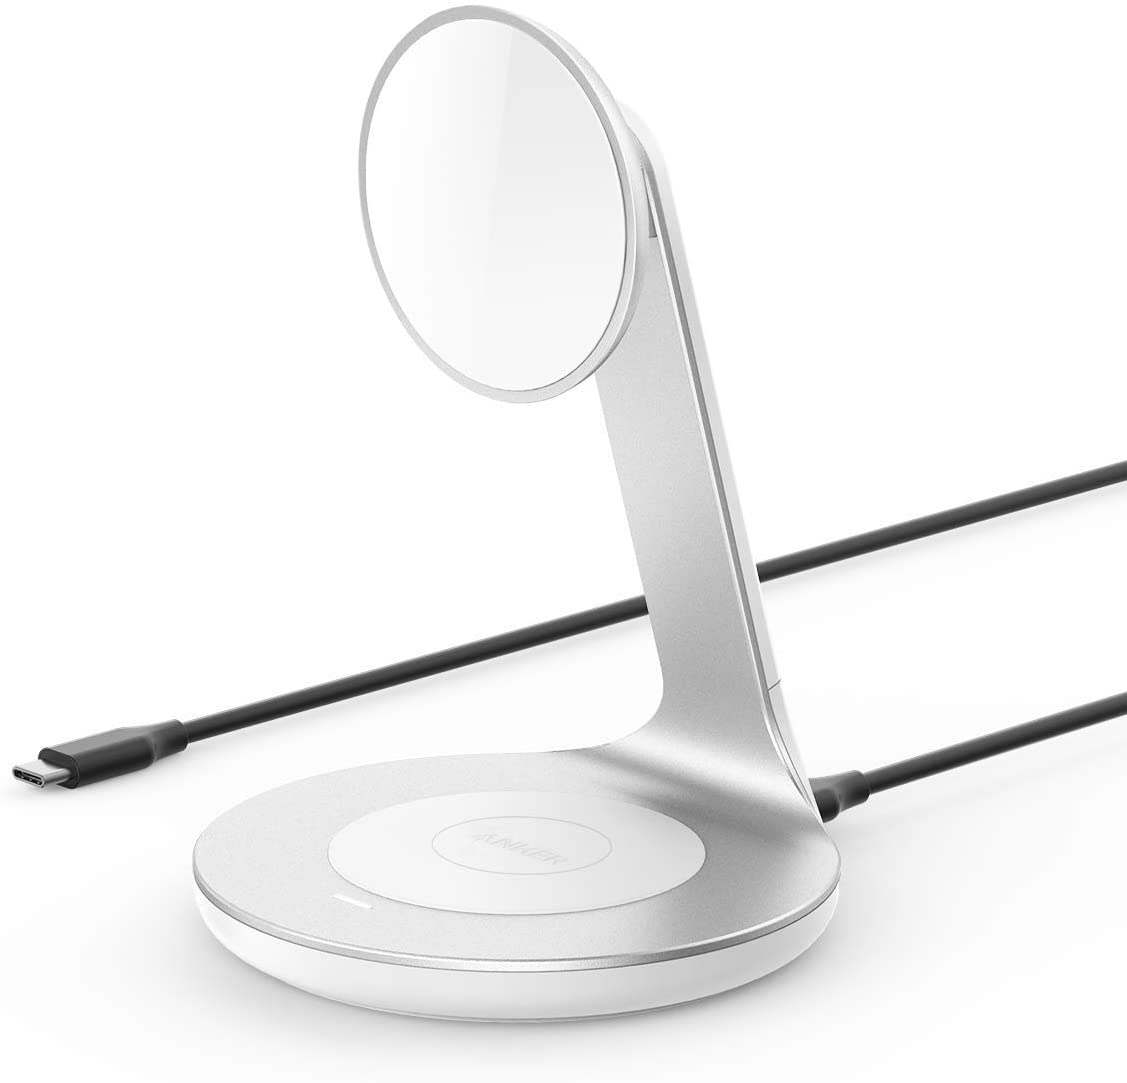 Anker PowerWave Magnetic 2-in-1 Wireless Charging Stand